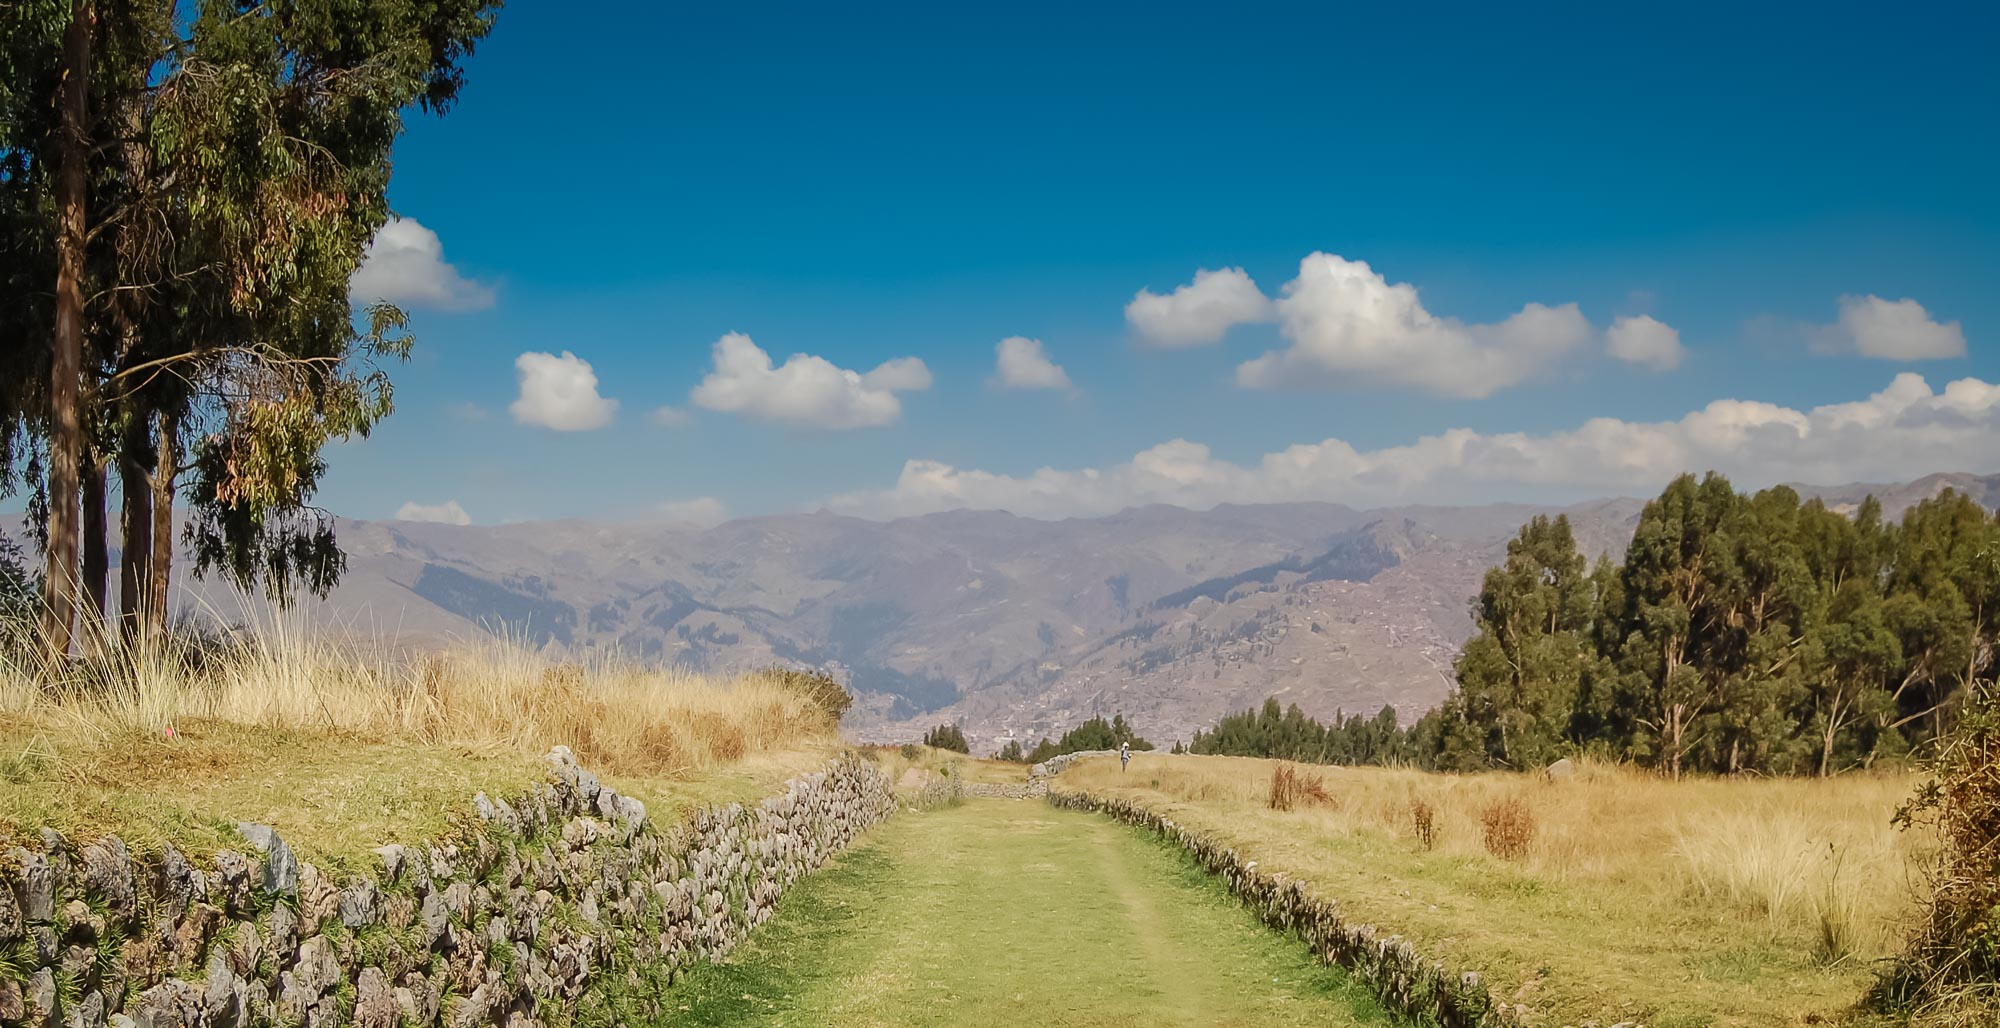 Inviting, rustic green pathway leads to a distant city on one of Peru's best tours